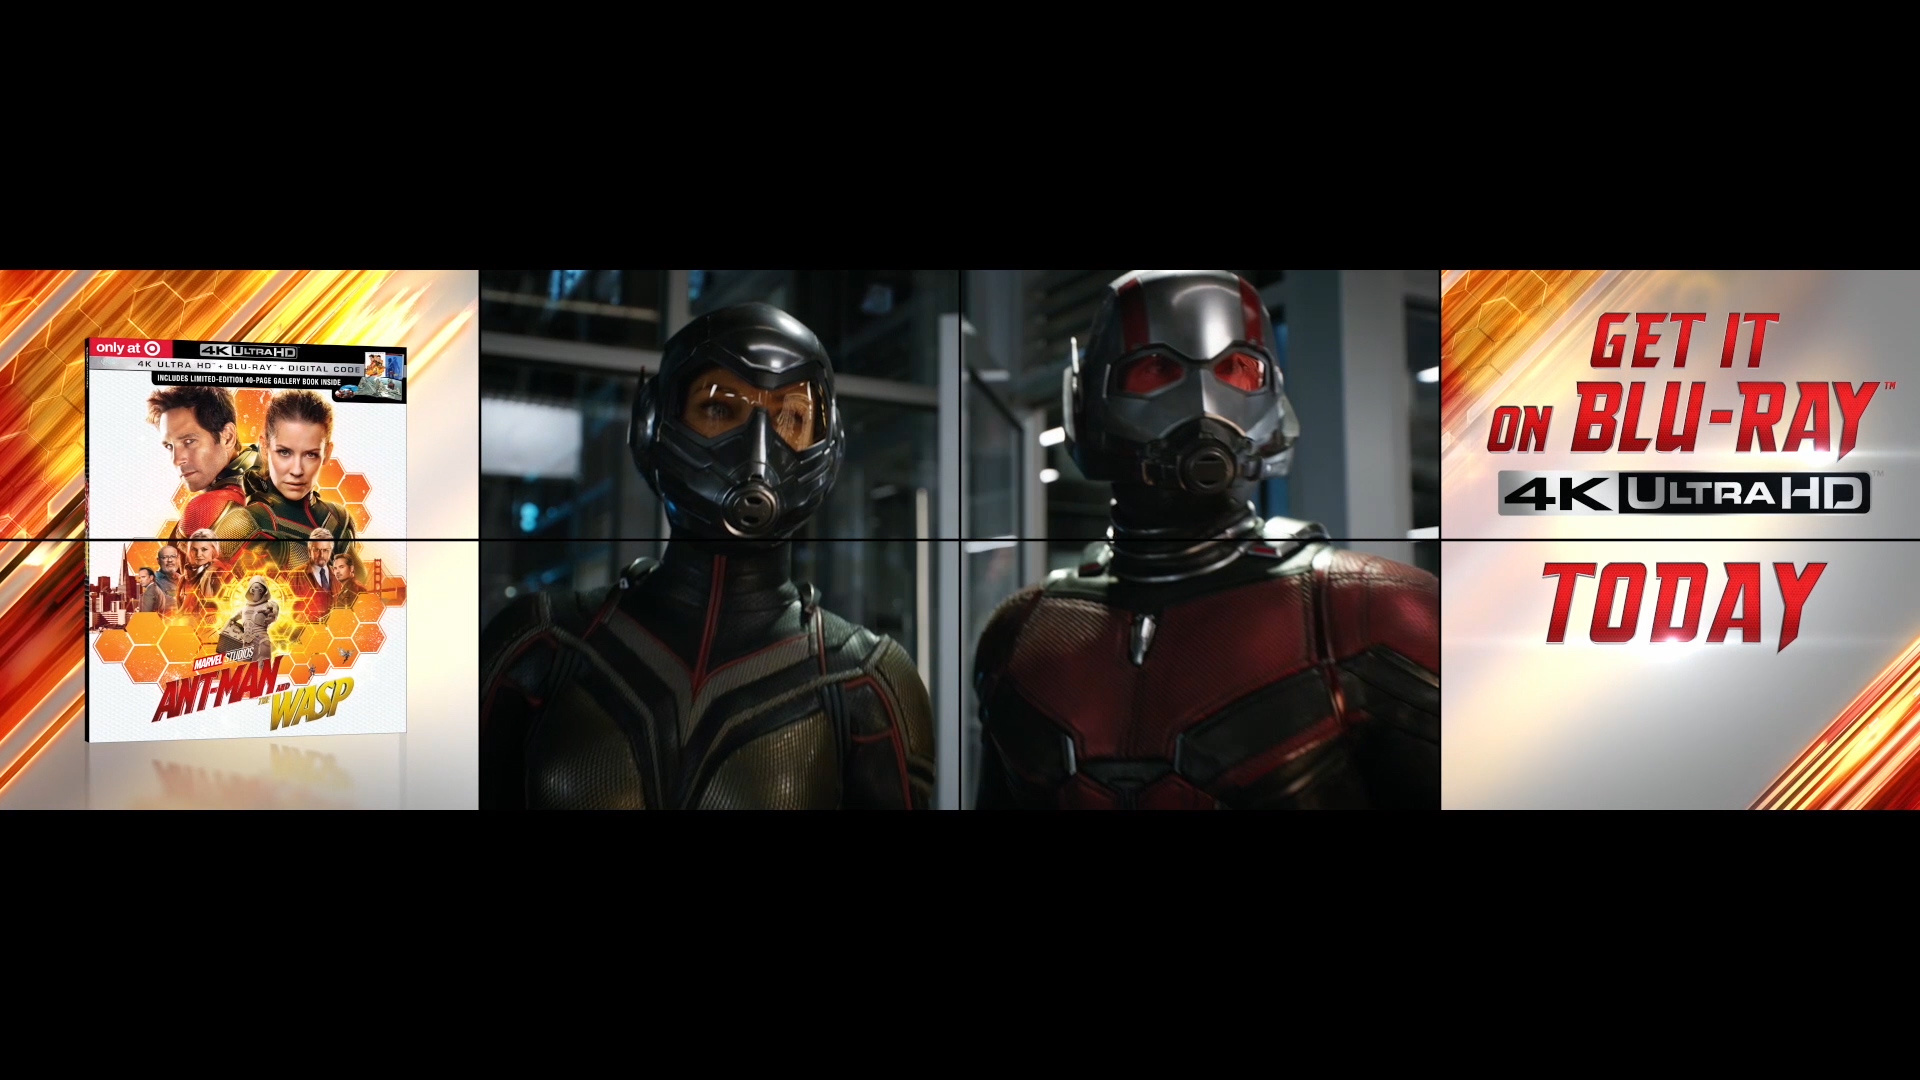 Thumbnail for Ant-Man & The Wasp - Target Wall